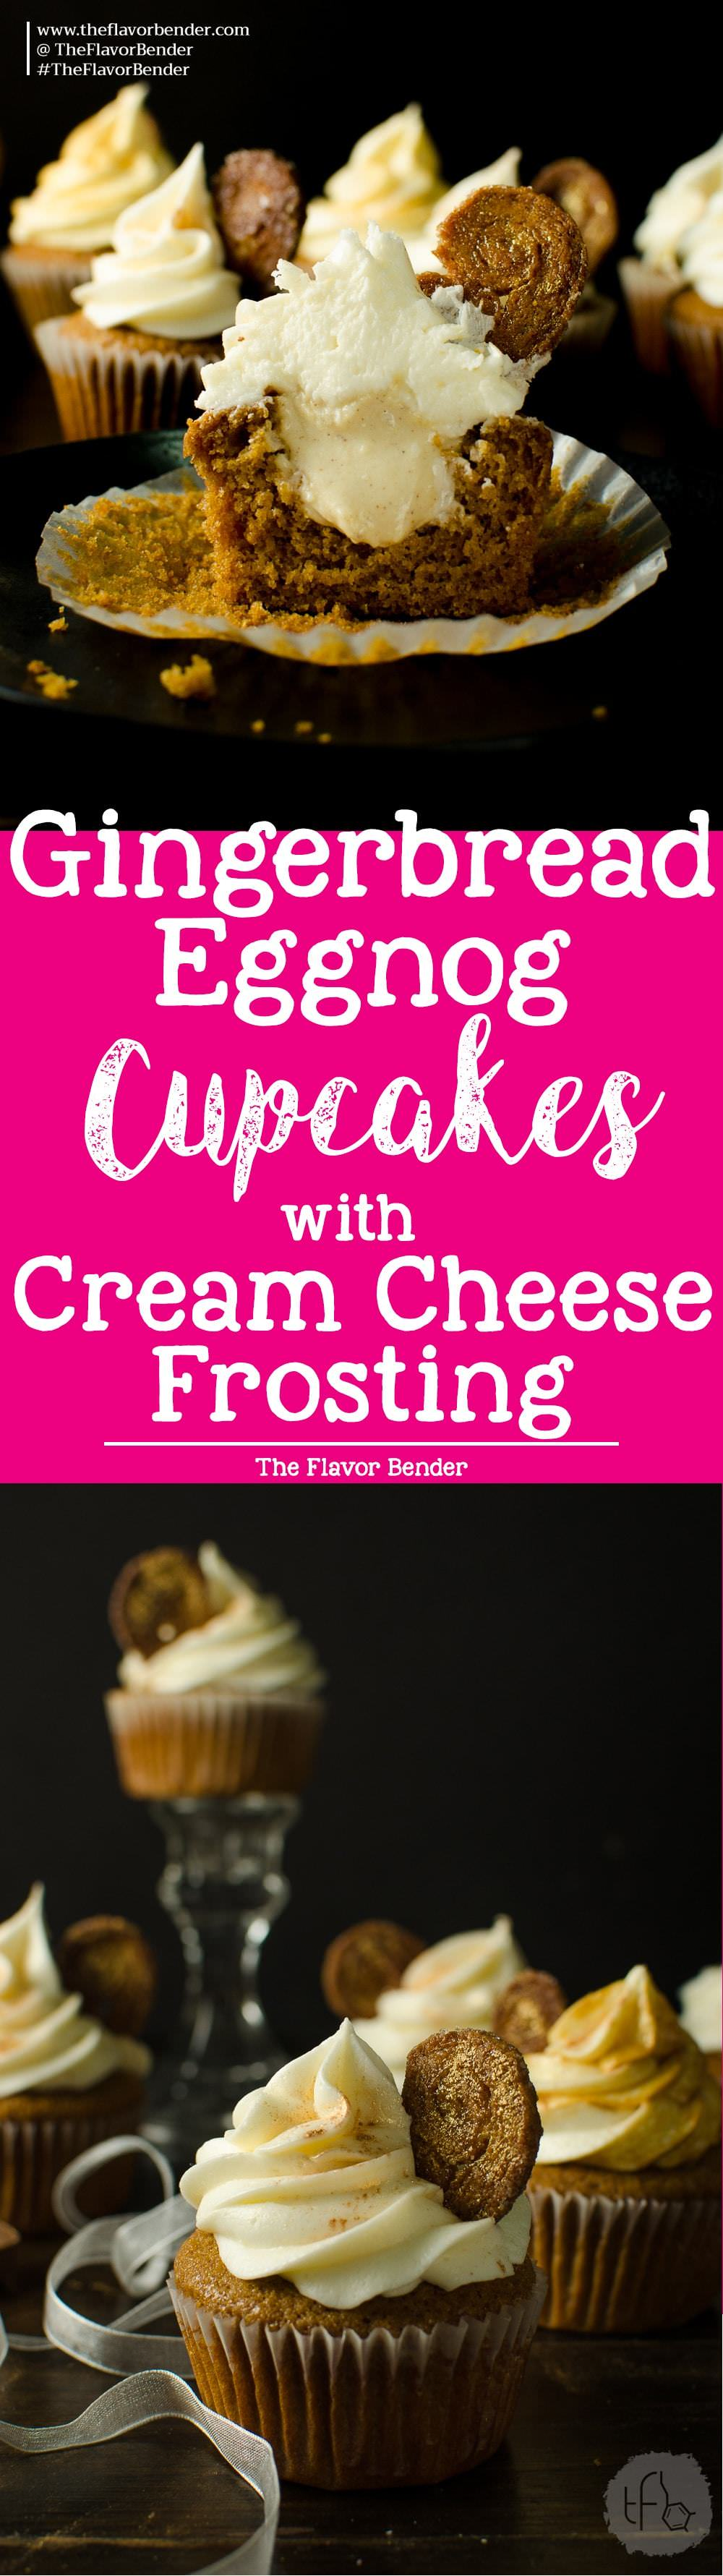 Gingerbread cupcakes with an Eggnog Pastry cream filling and Cream Cheese Frosting - Super soft, moist gingerbread spiced cupcakes. Holiday Baking | Gingerbread | Ginger | Eggnog | Cream Cheese Frosting | Eggnog Pastry Cream | Holiday | Cupcakes | Recipe via theflavorbender.com